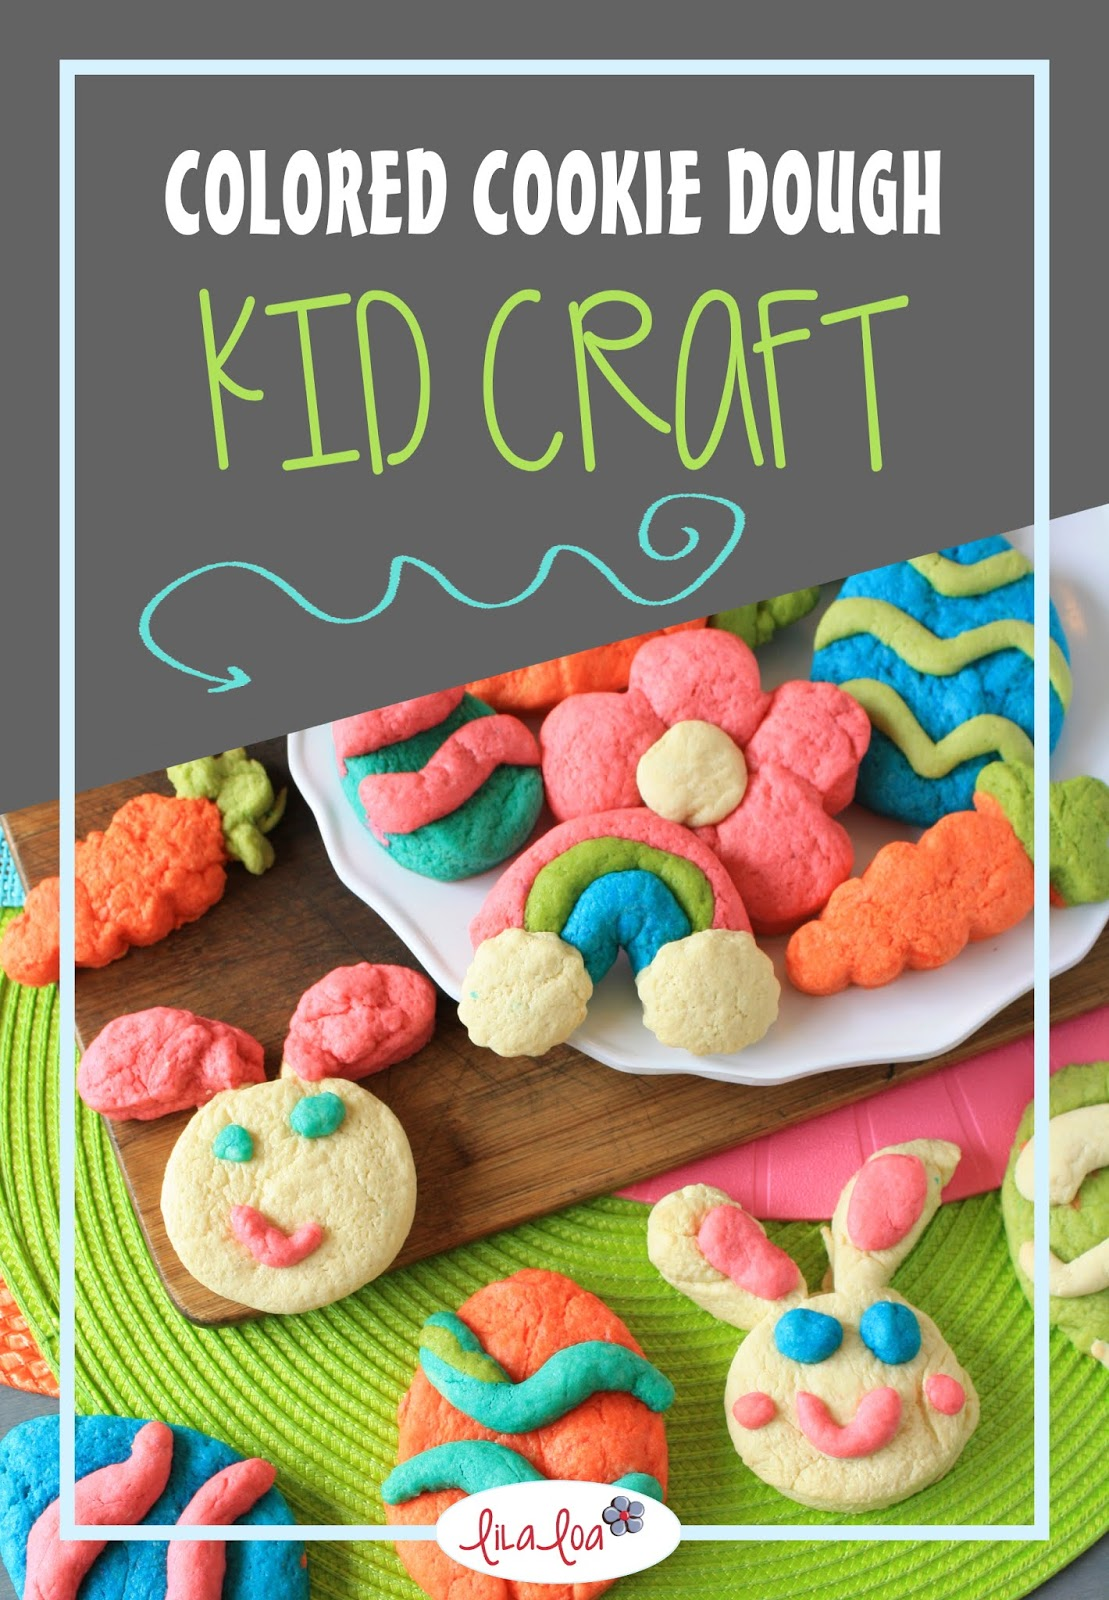 cookie dough - play dough! Easy Easter craft for kids!